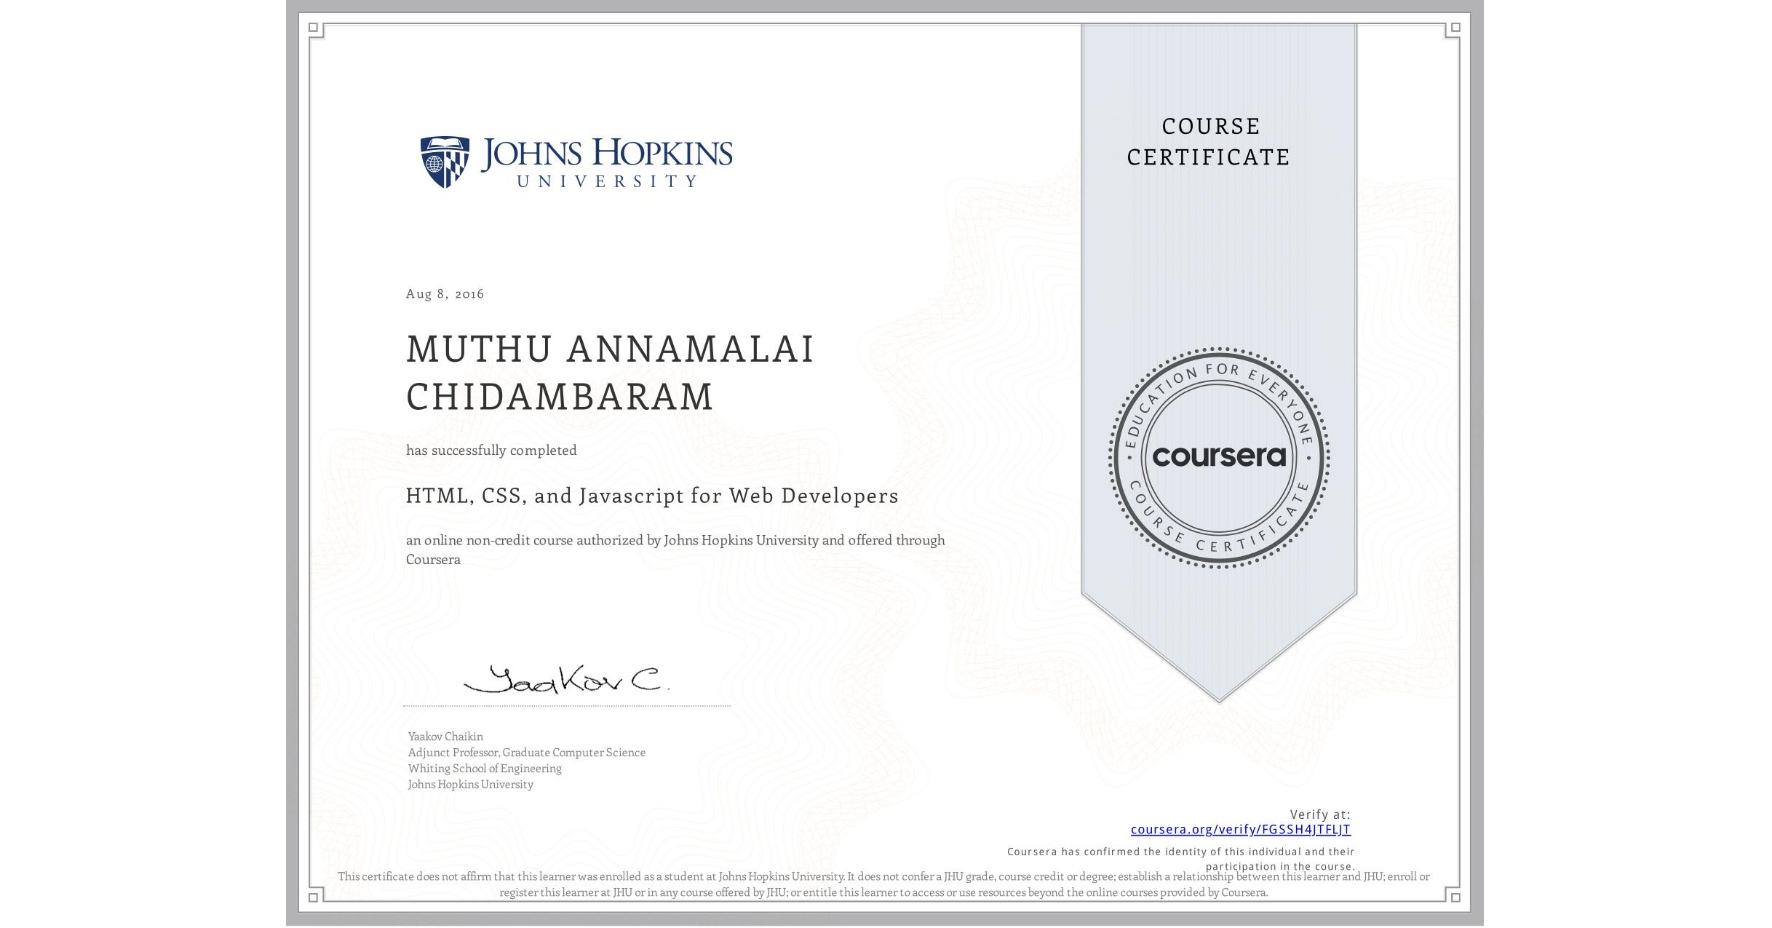 View certificate for MUTHU ANNAMALAI  CHIDAMBARAM, HTML, CSS, and Javascript for Web Developers, an online non-credit course authorized by Johns Hopkins University and offered through Coursera